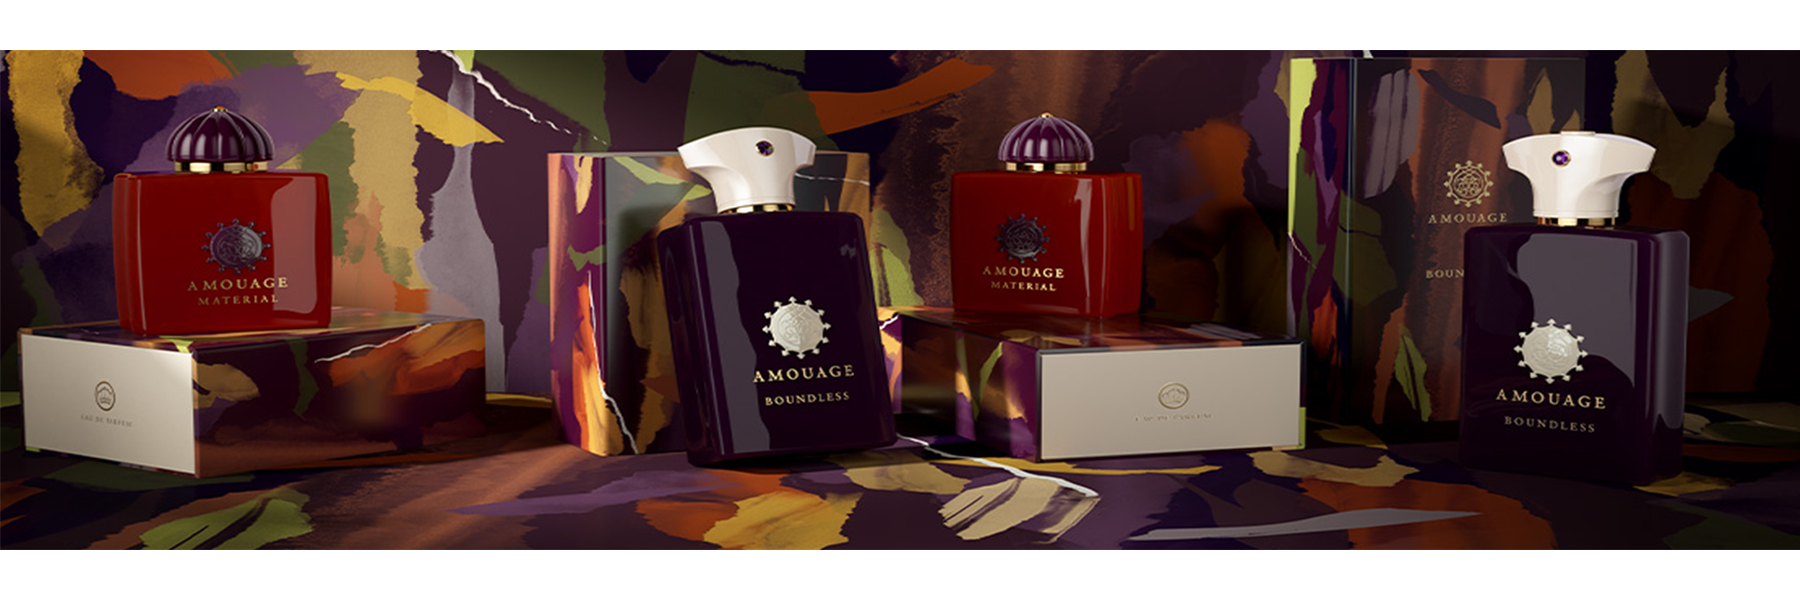 Amouage | Material & Boundless